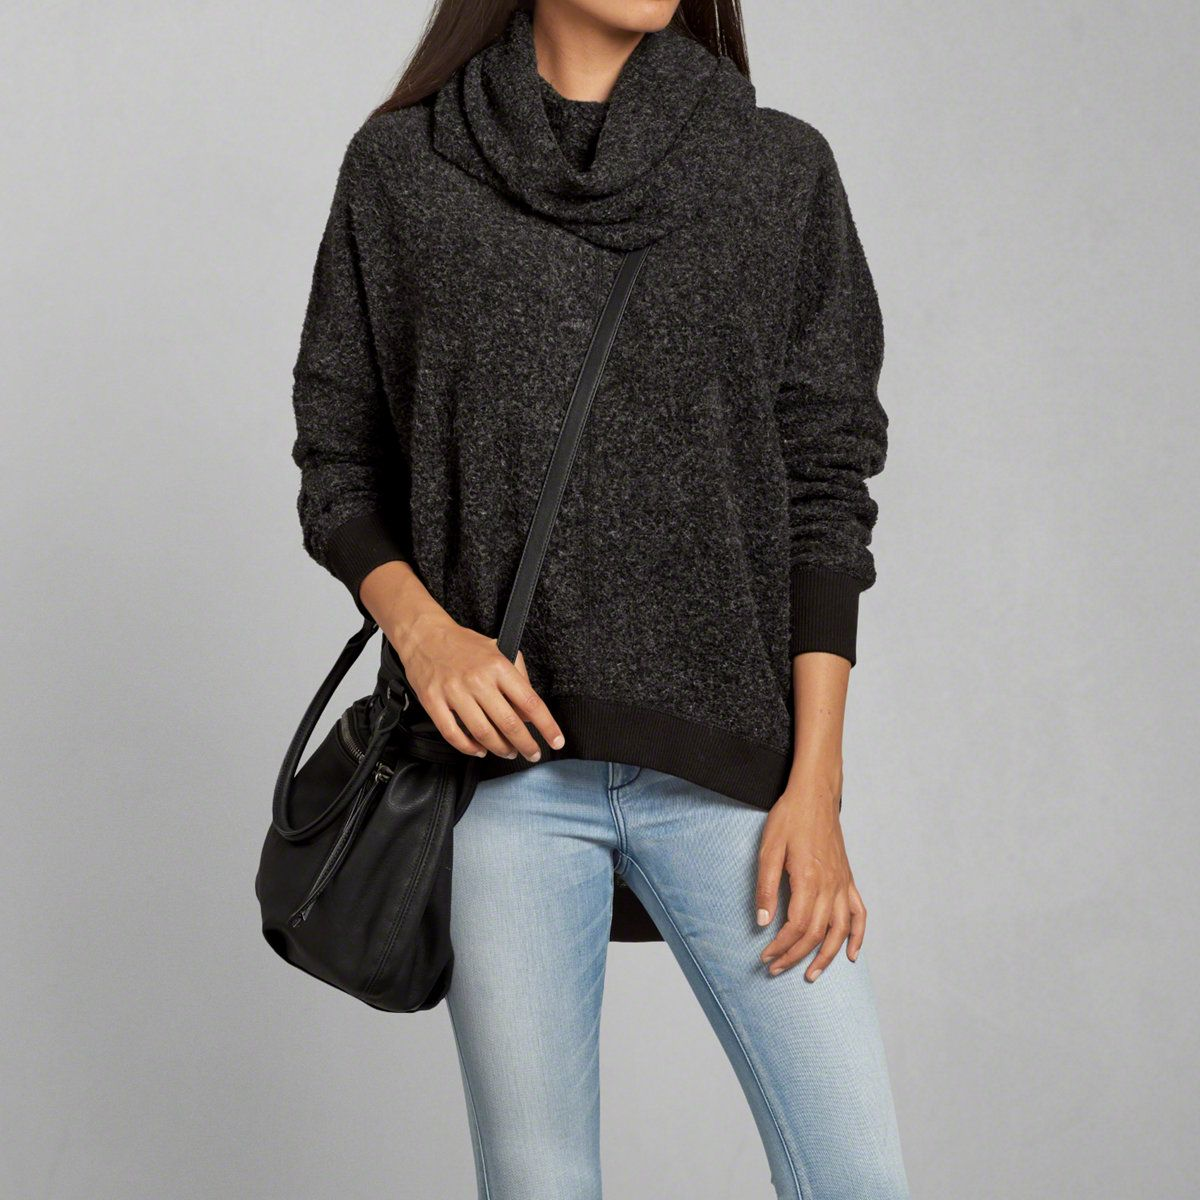 fbfb62e834 Womens Textured Cowl Neck Sweatshirt